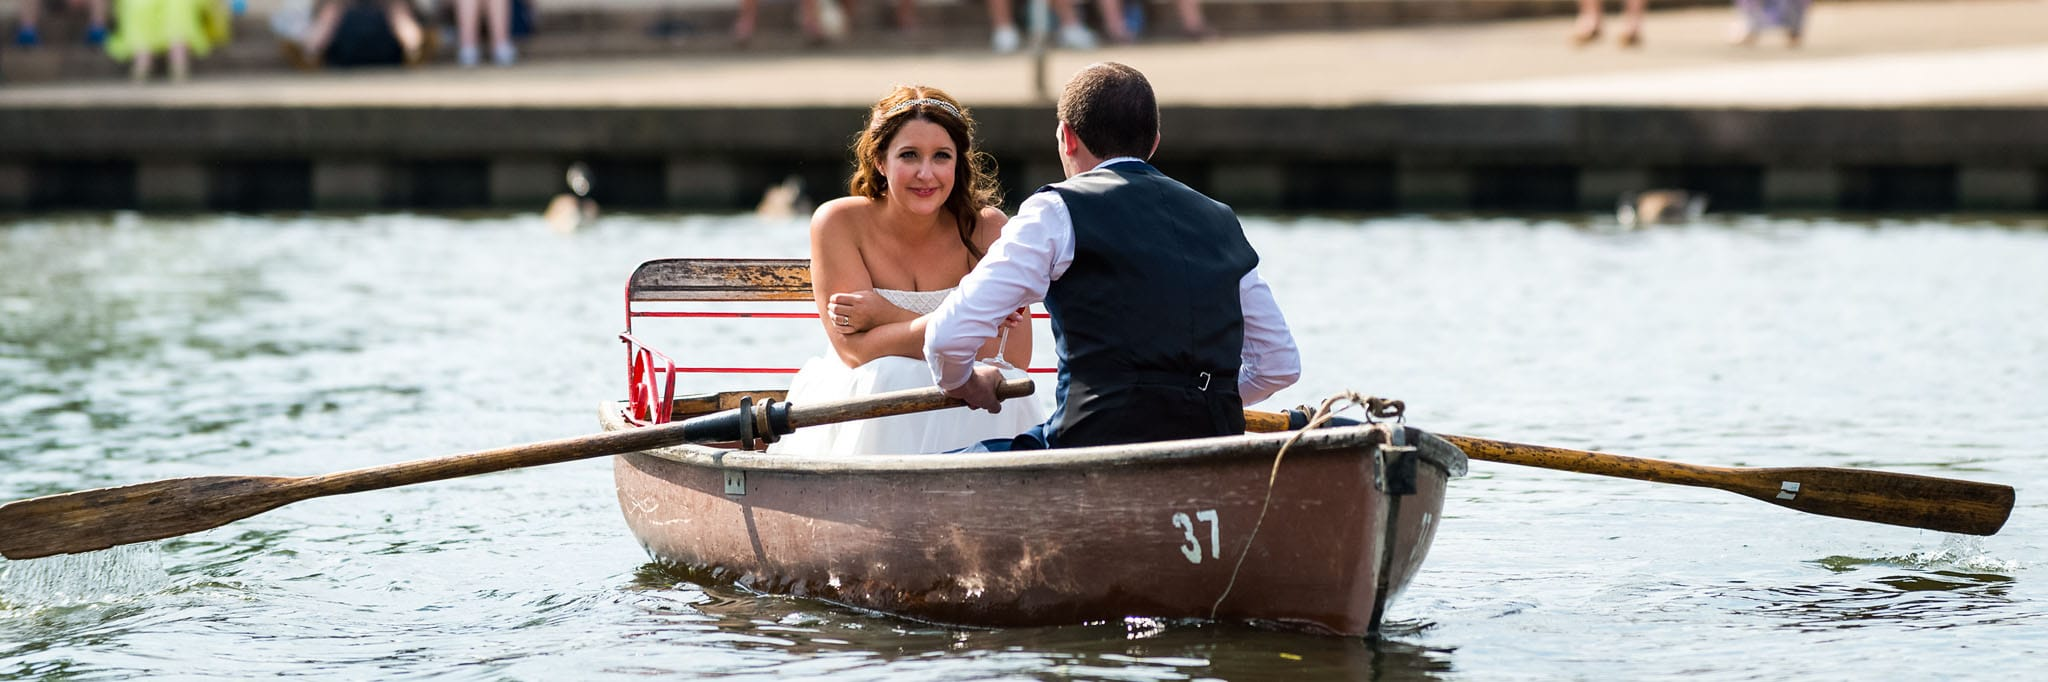 bride and groom on a rowing boat in stratford-upon-avon